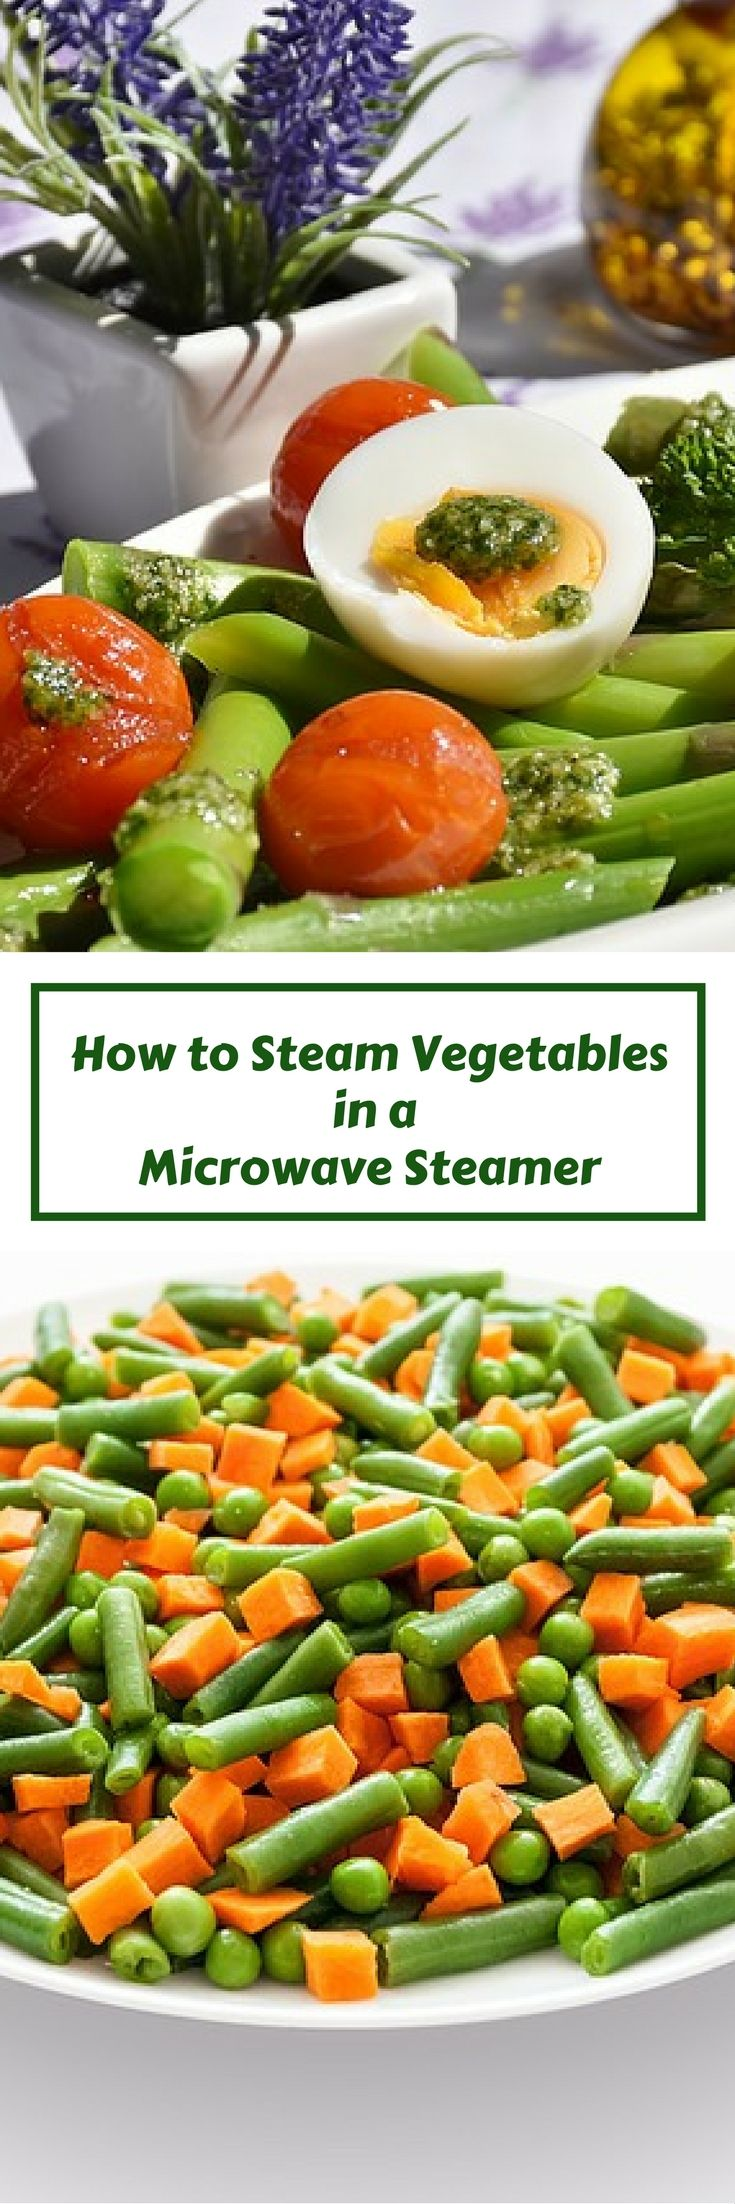 How to Steam vegetables in a microwave steamer successfully